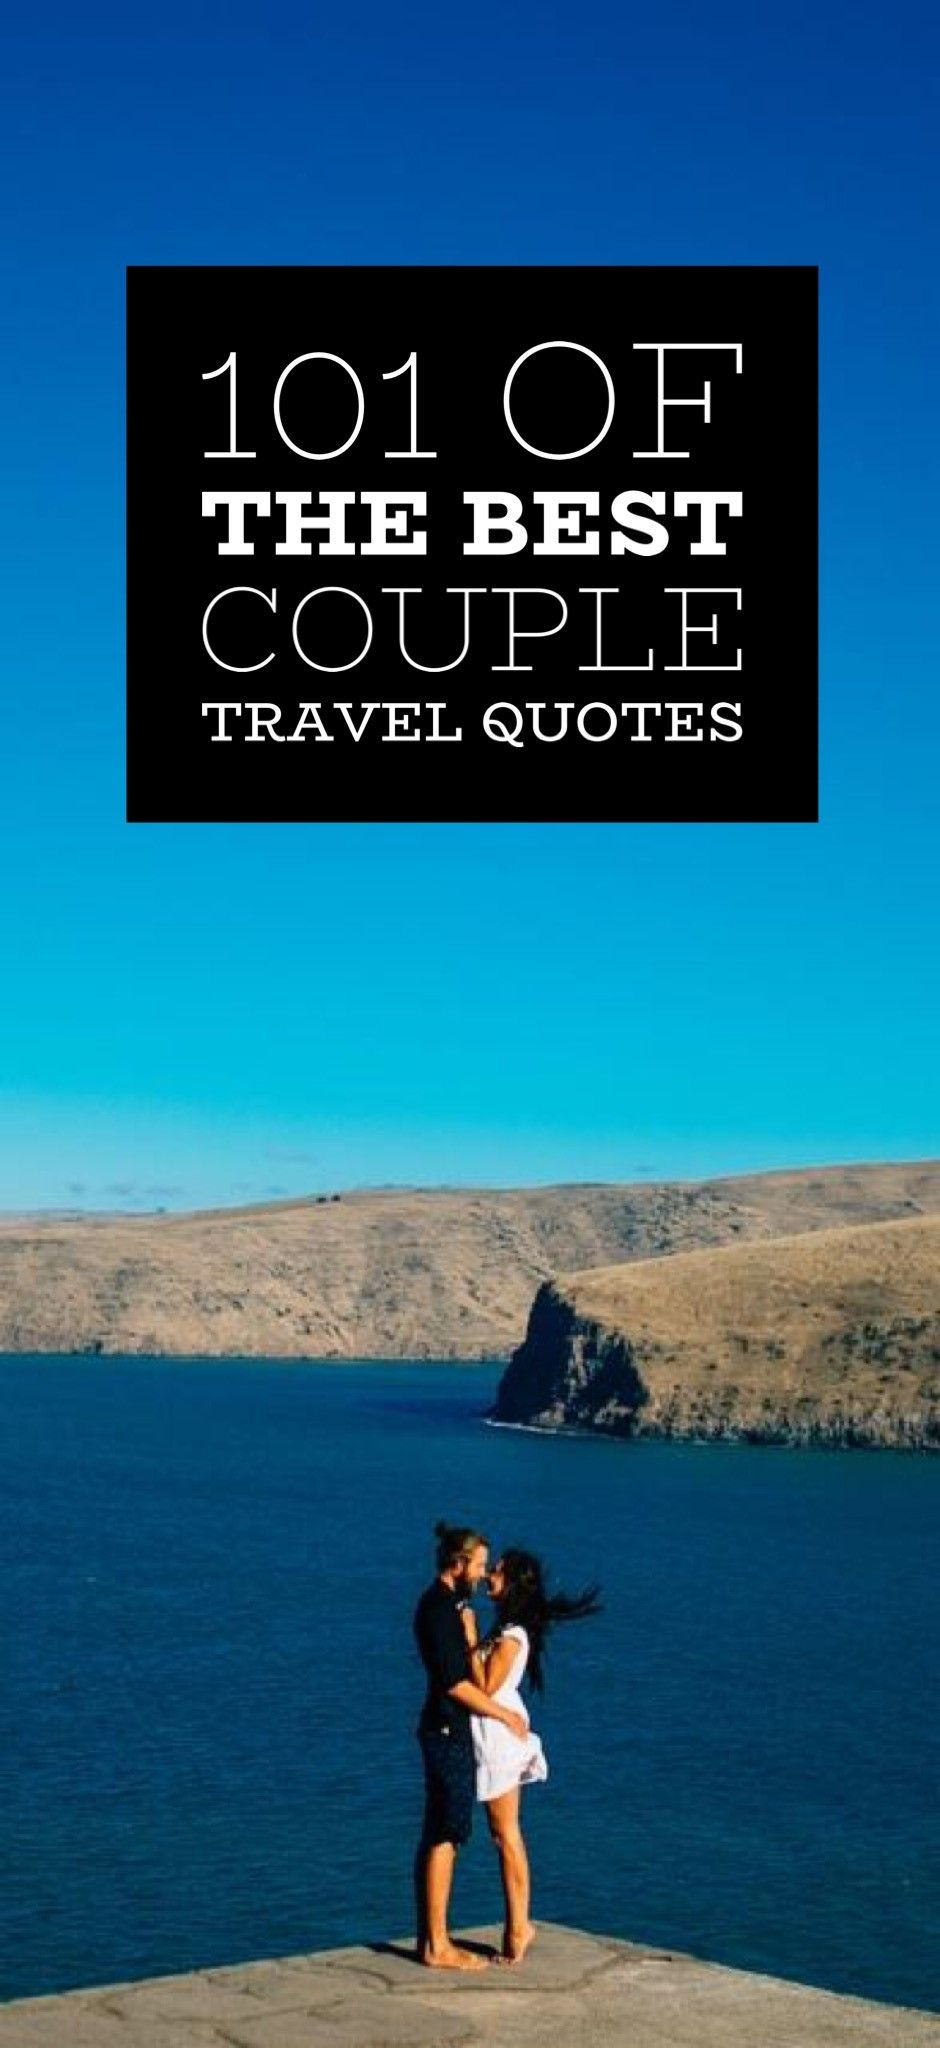 101 Of The Best Couple Travel Quotes Travel Pinterest Travel